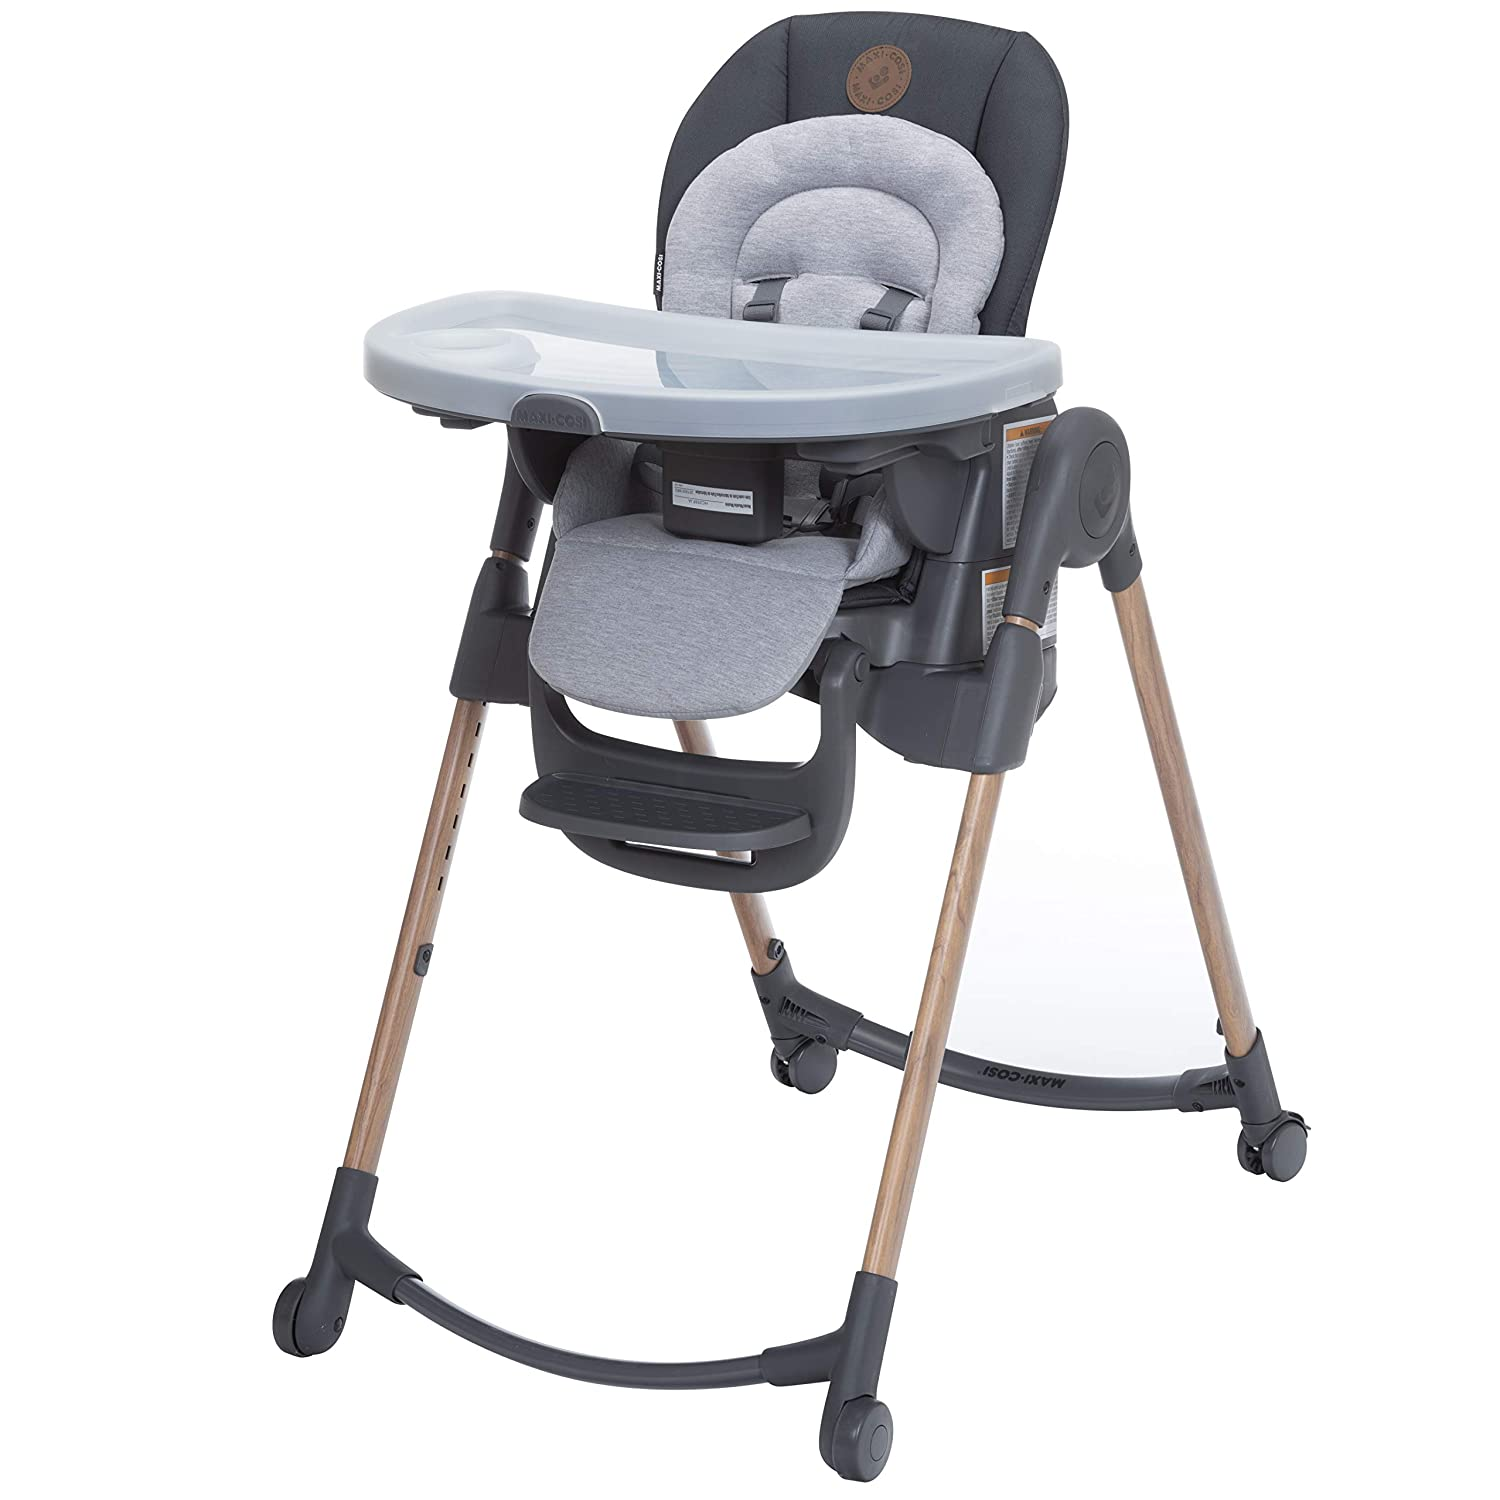 High Chair - Baby Shopping List For First Time Mon